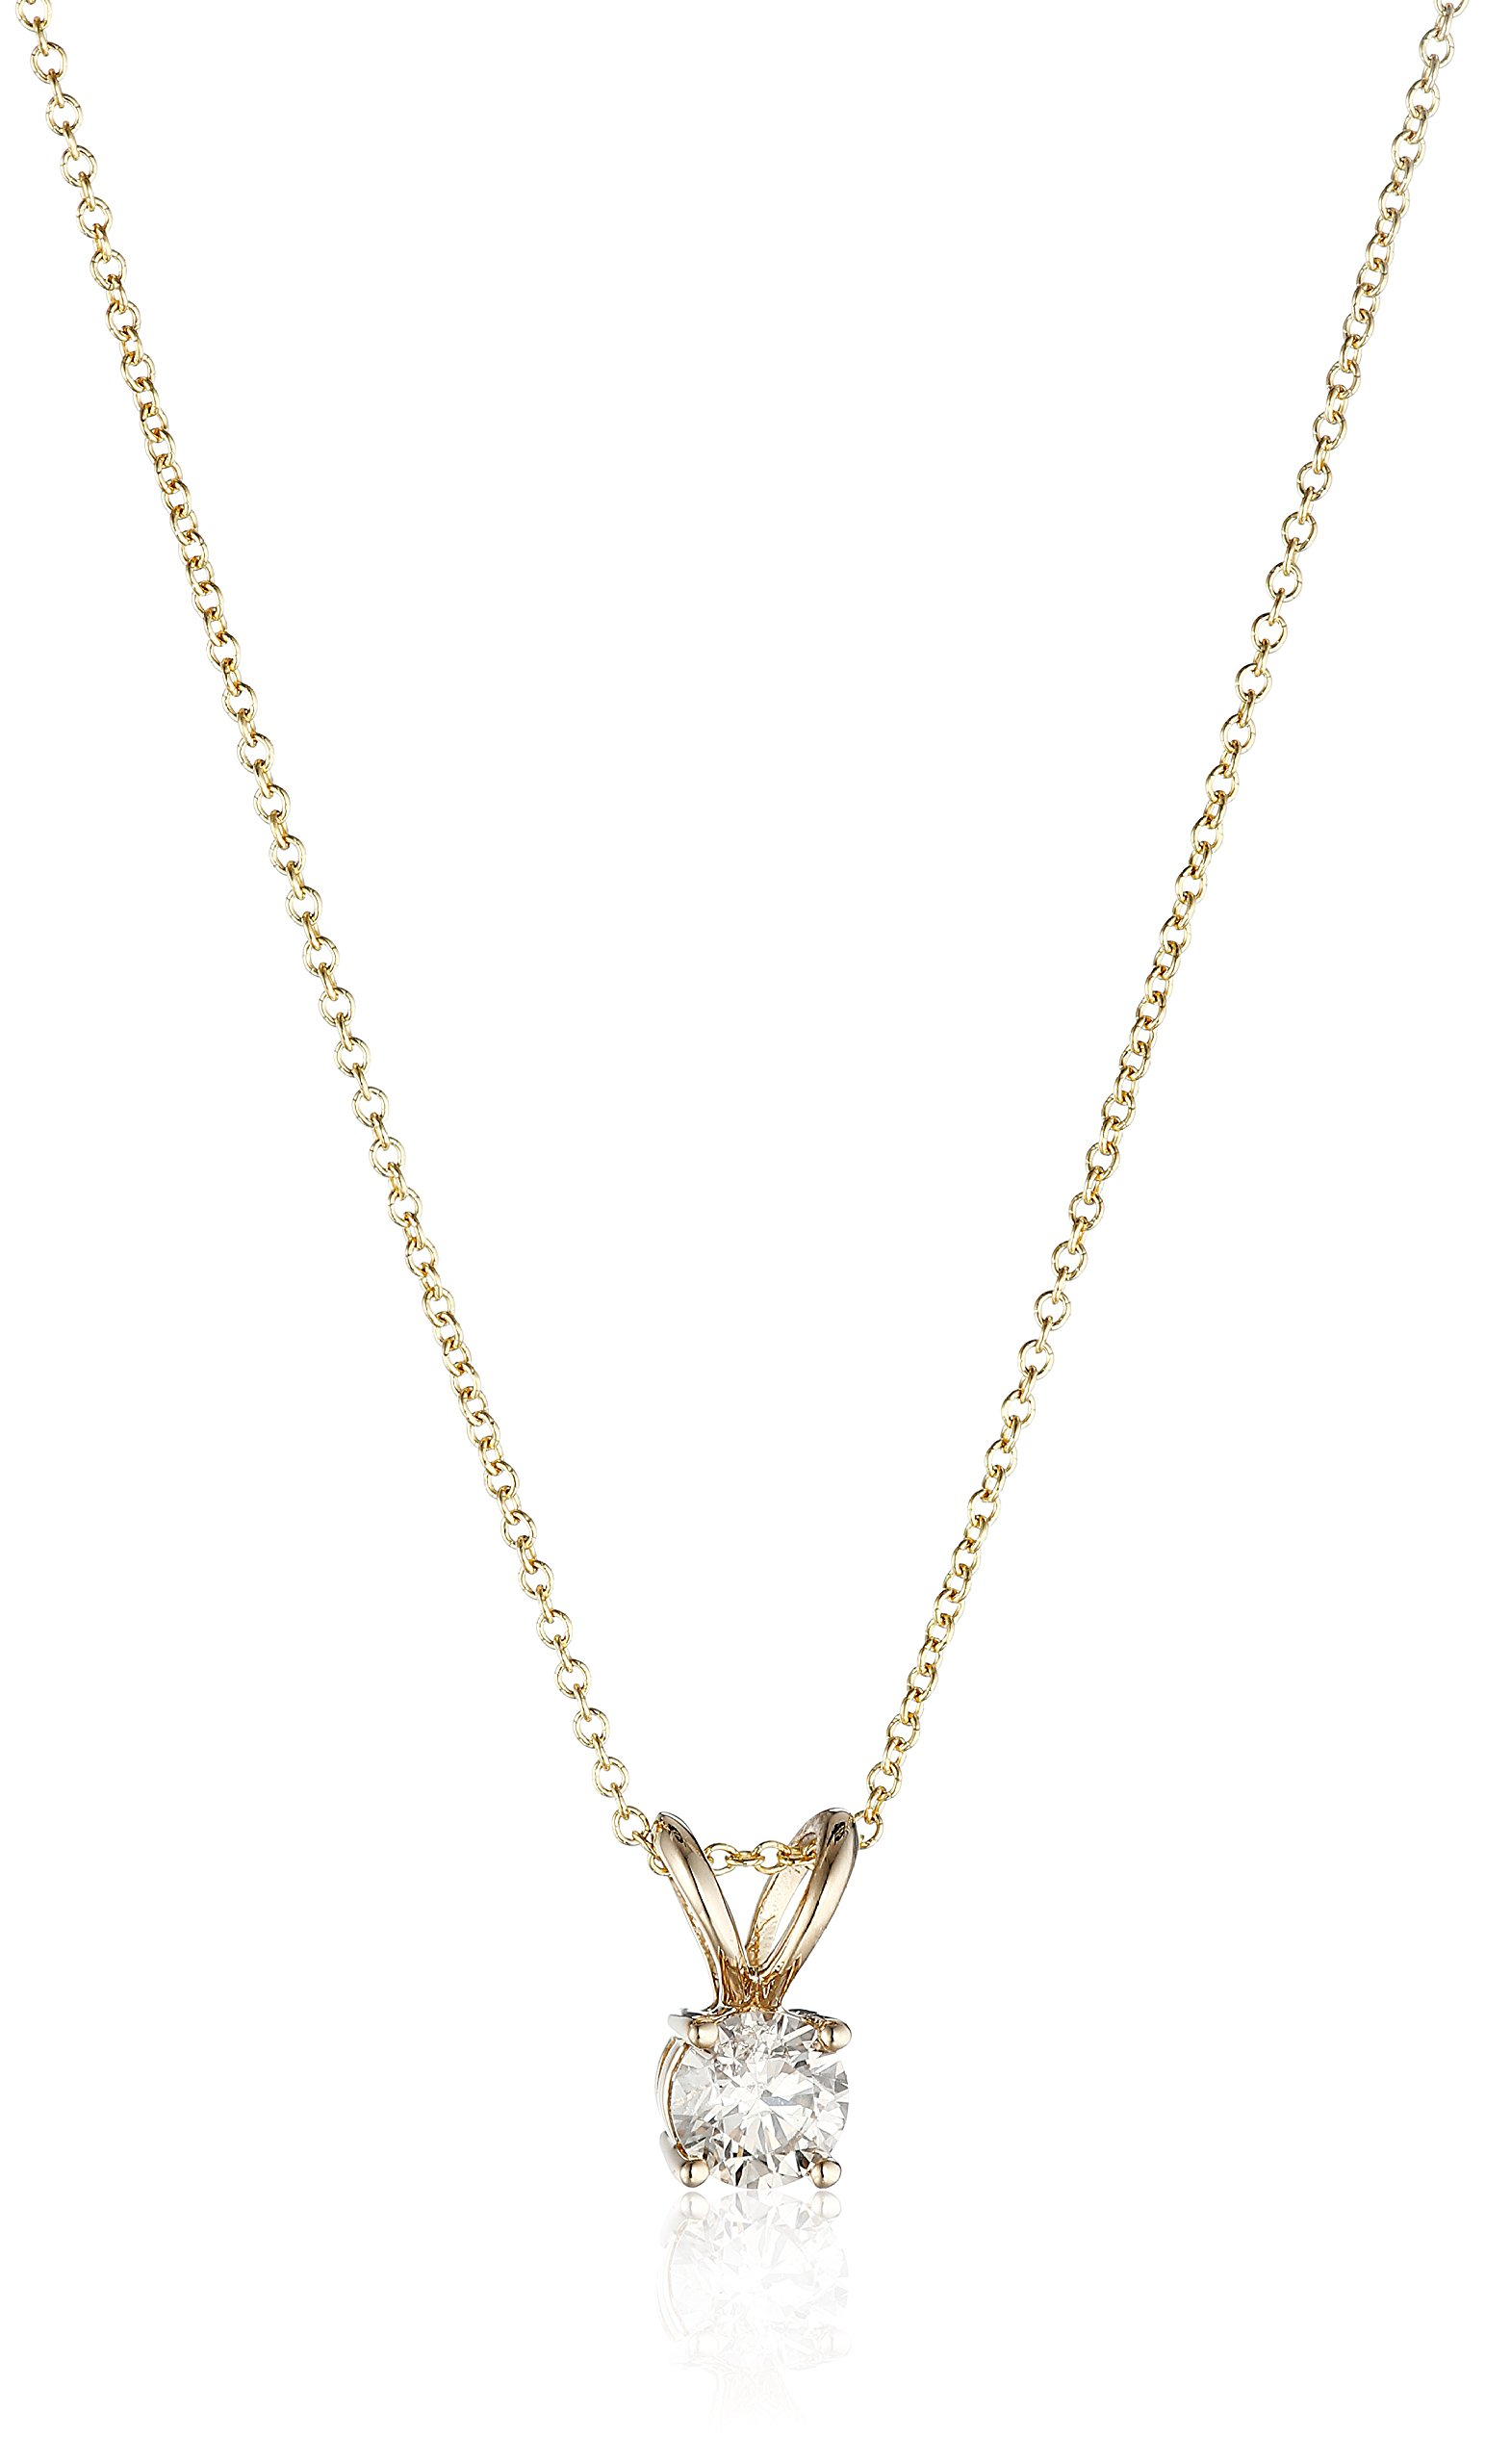 14k Yellow Gold 16'' Adjustable to 18'' 4-Prong Set Round-Cut Diamond Pendant (1/2 cttw, J-K Color, I2-I3 Clarity)